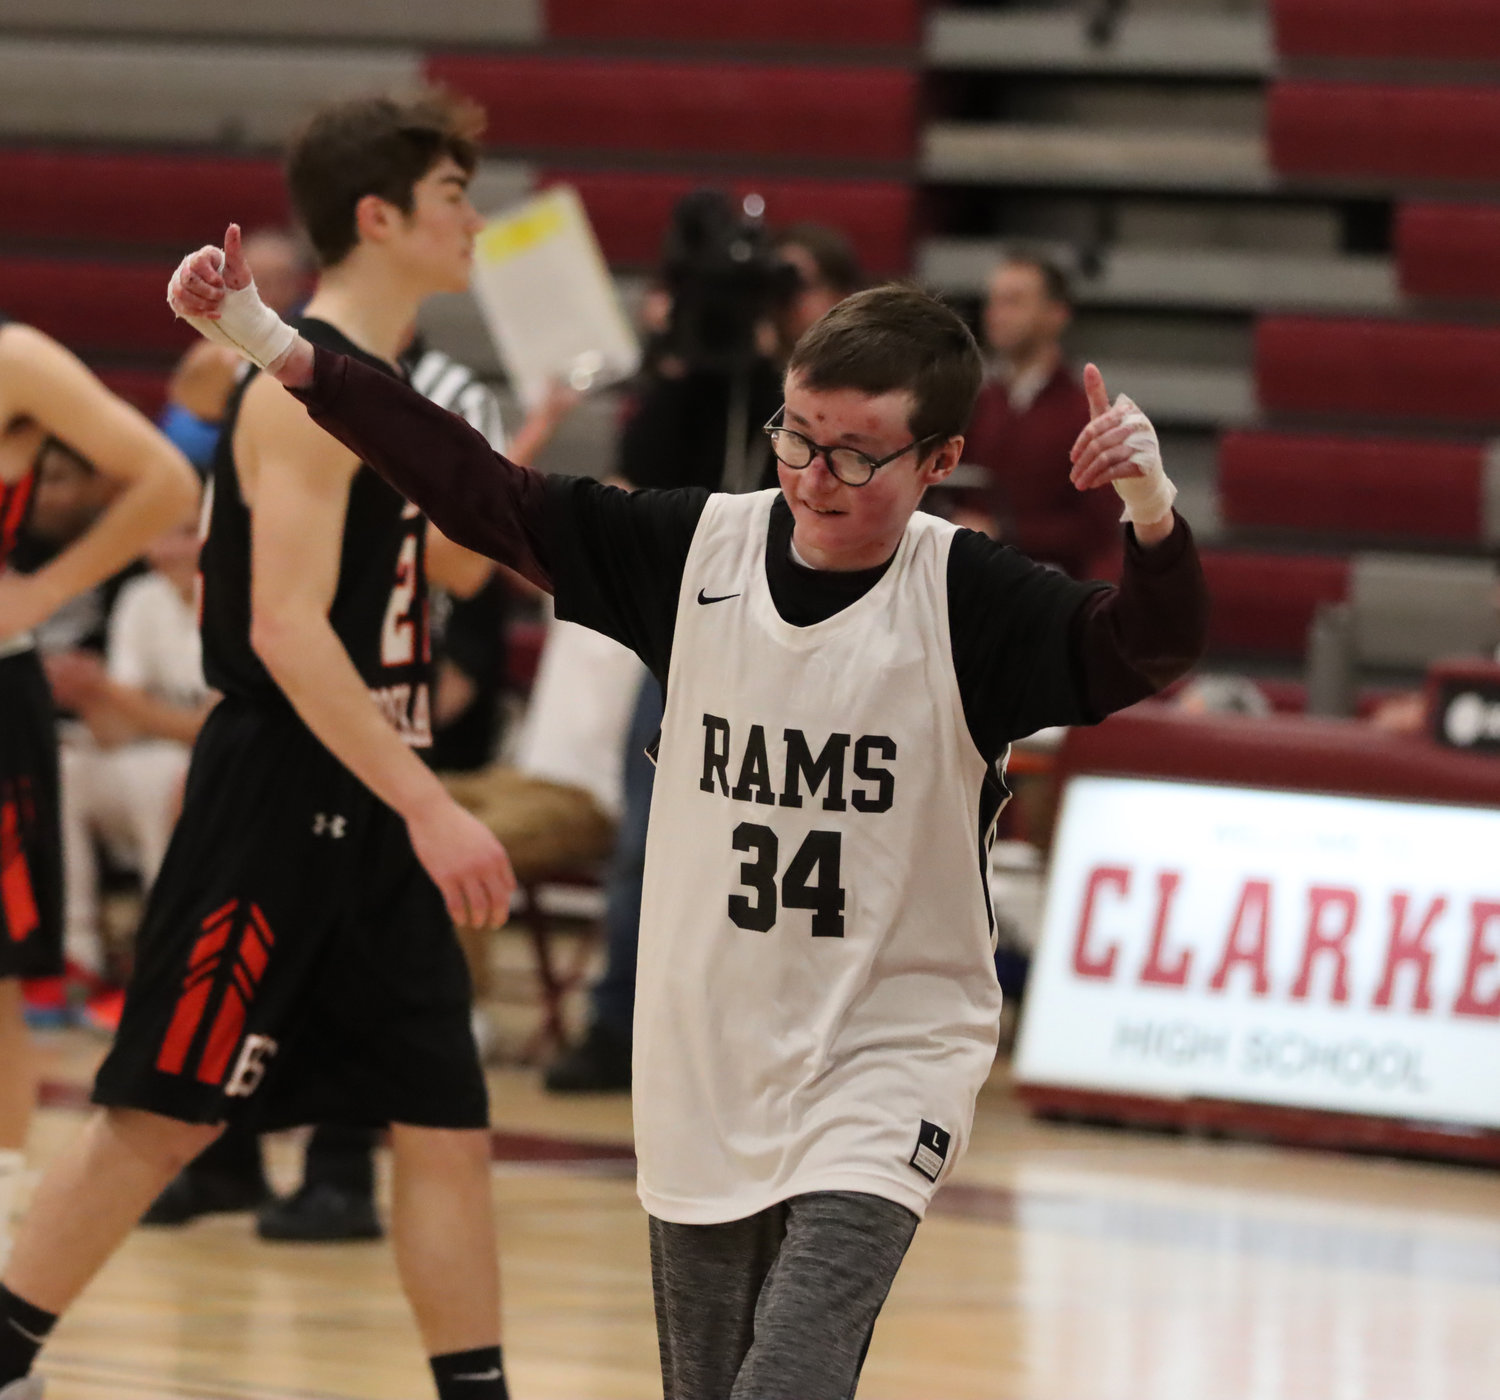 Robbie Twible ran onto the court when W.T. Clarke High School faced off against East Rockaway High School last Friday. The 17-year-old watches the games from the sidelines because he has a life-threatening skin disorder, but this time he shot, and scored.